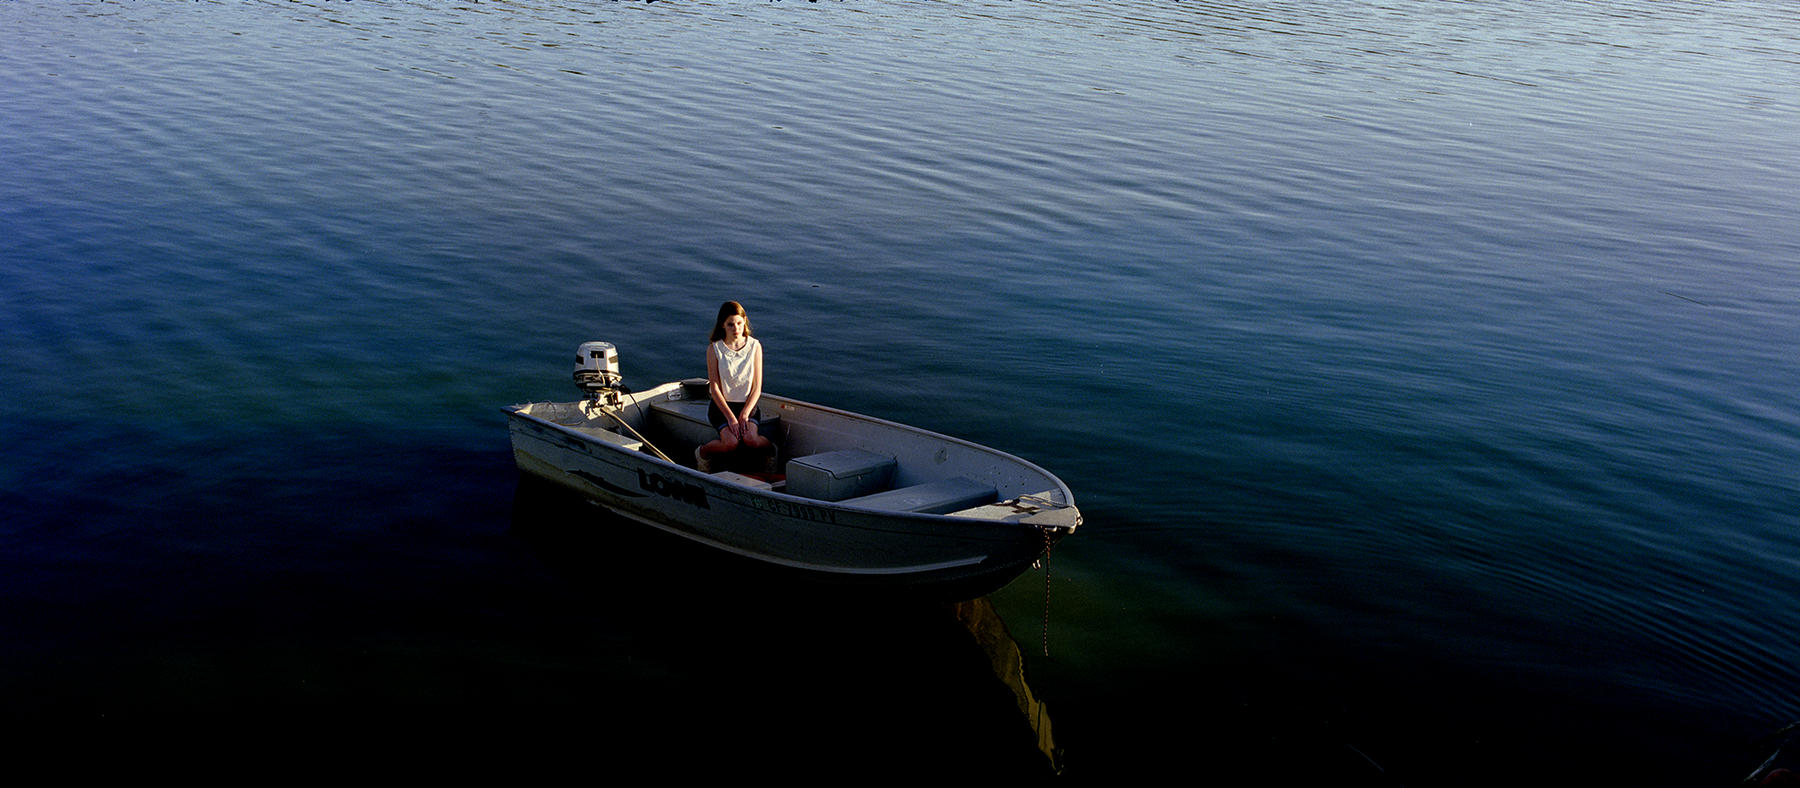 A sitting girl in a motor boat surrounded by blue water